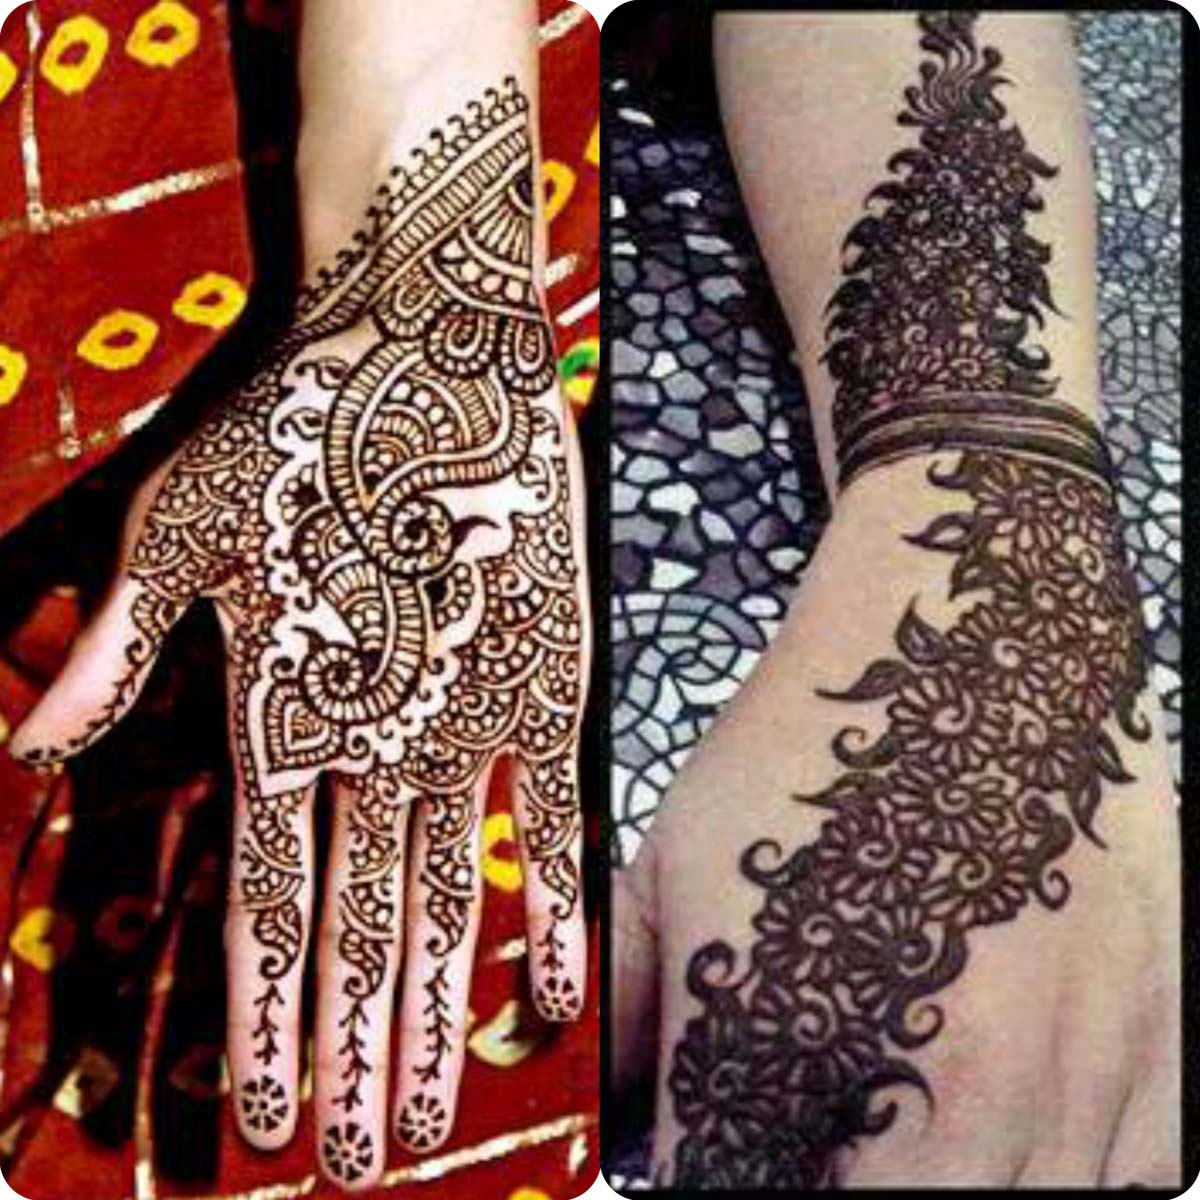 Mehndi design 2017 eid collection - New Simple And Easy Mehndi Designs 2016 2017 For Eid Al Azha 11